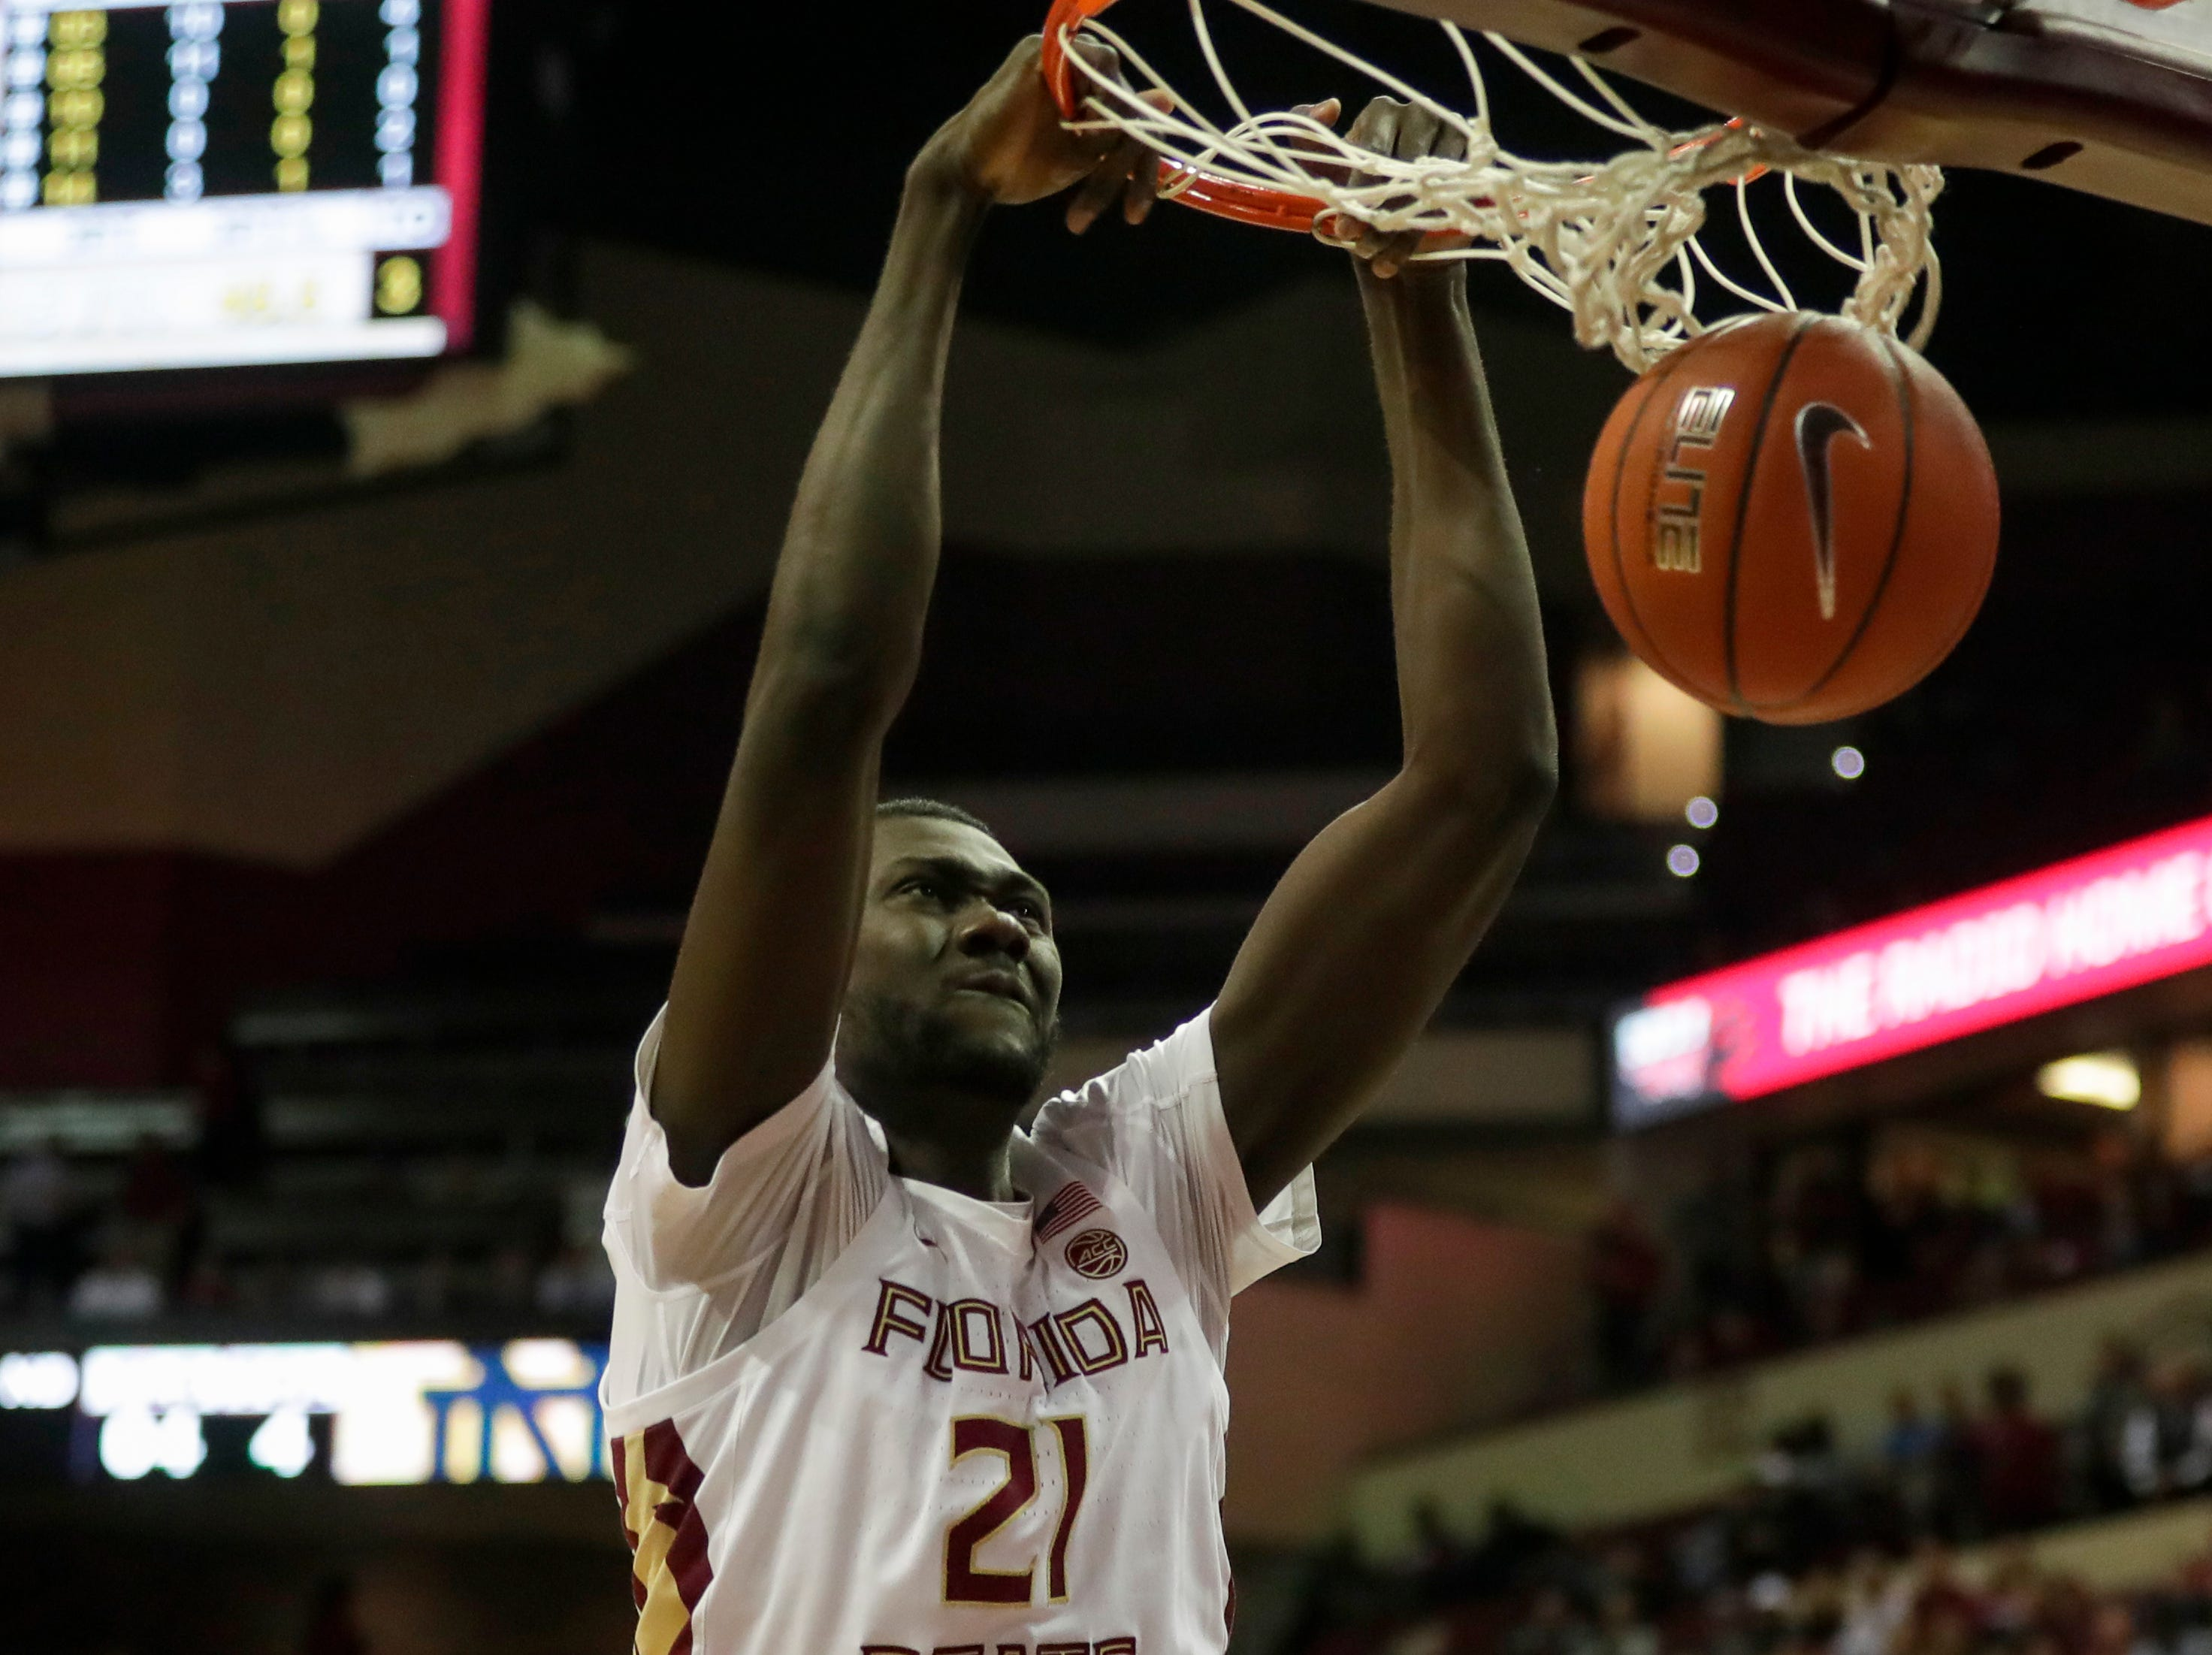 Florida State Seminoles center Christ Koumadje (21) dunks during a game between FSU and Notre Dame University at the Donald L. Tucker Civic Center Monday, Feb. 25, 2019.